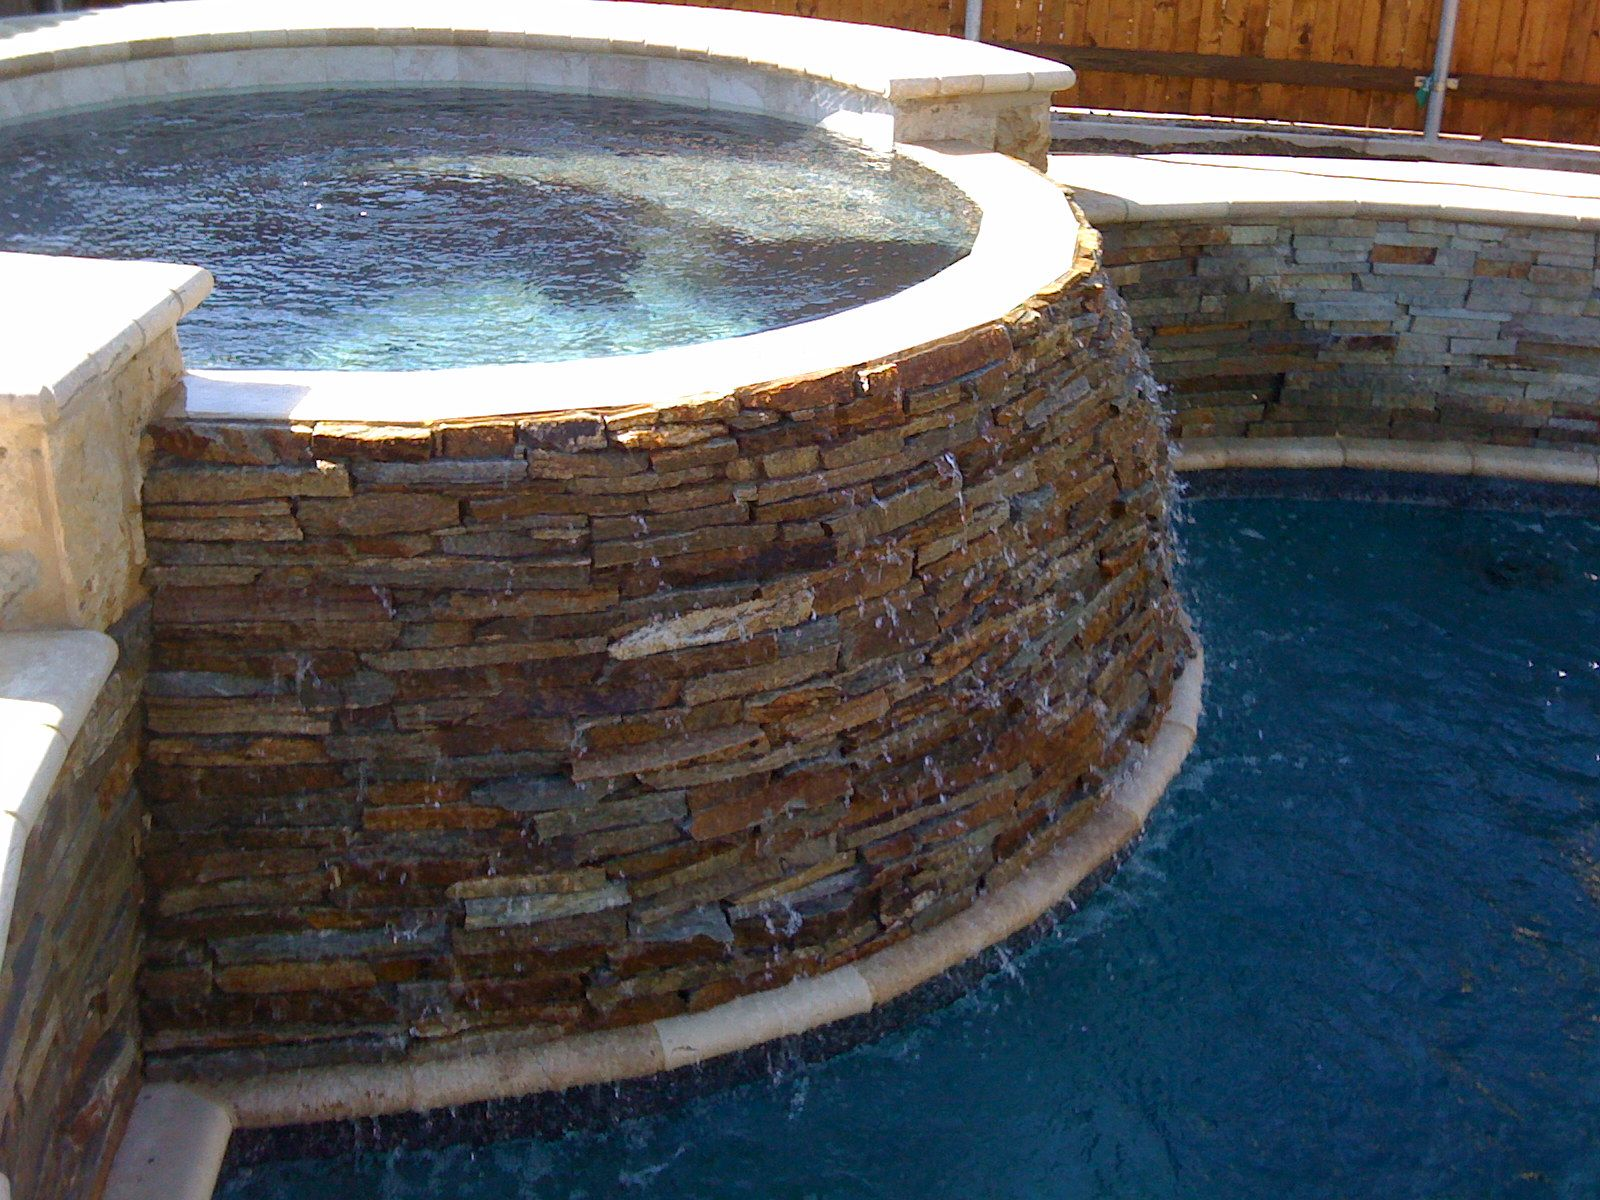 Pool remodeling dfw dallas area pool remodeling for Affordable pools dfw